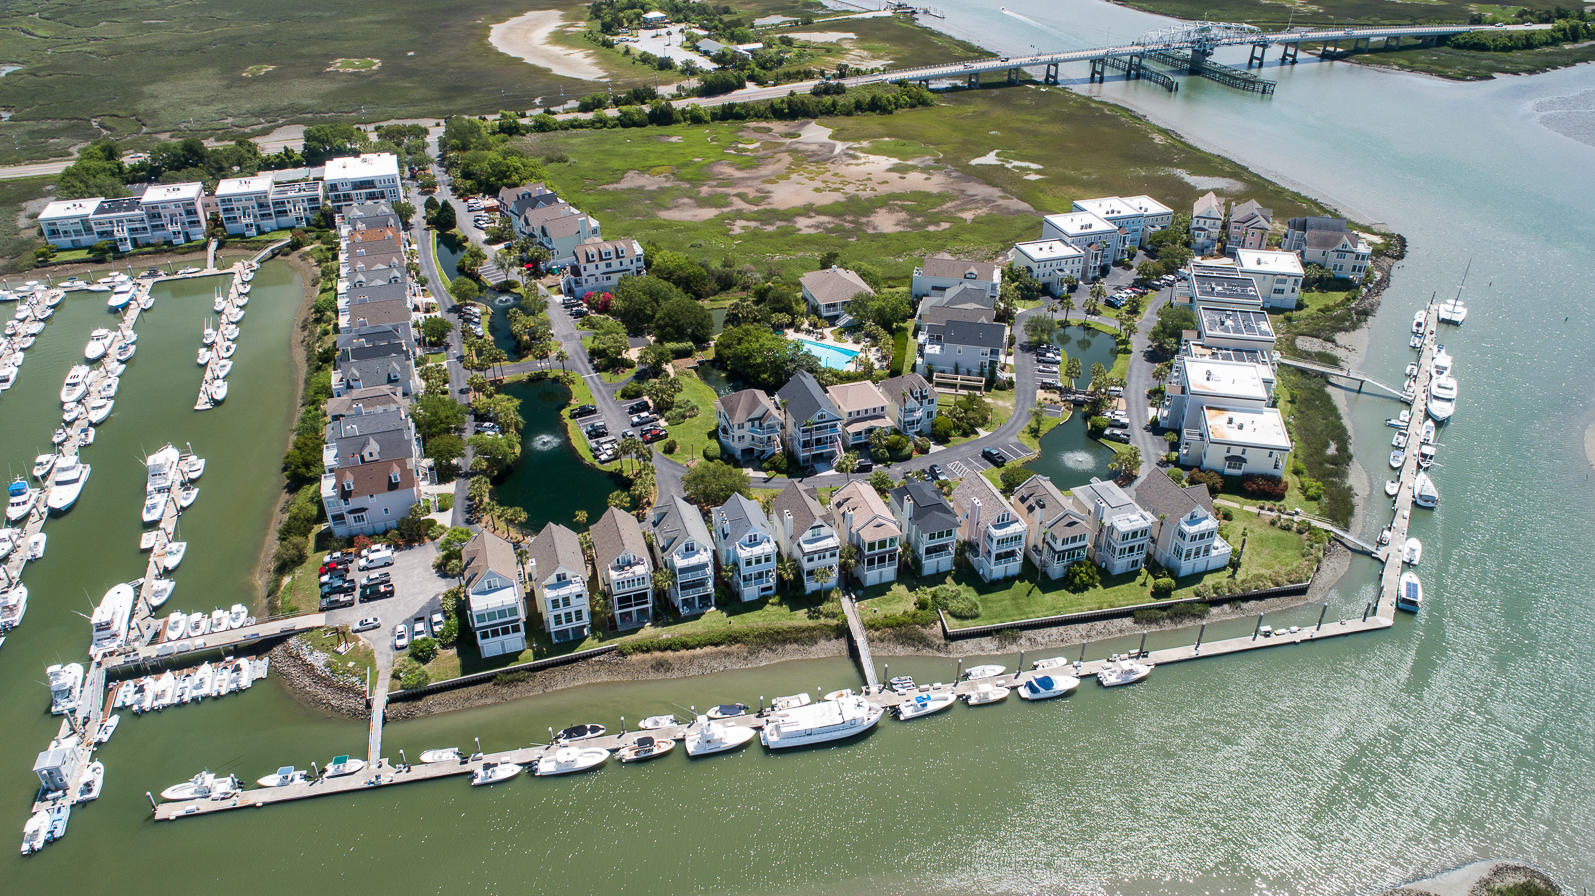 Tolers Cove Homes For Sale - B-4 & B-5 Tolers Cove Marina 70ft + Home, Mount Pleasant, SC - 51